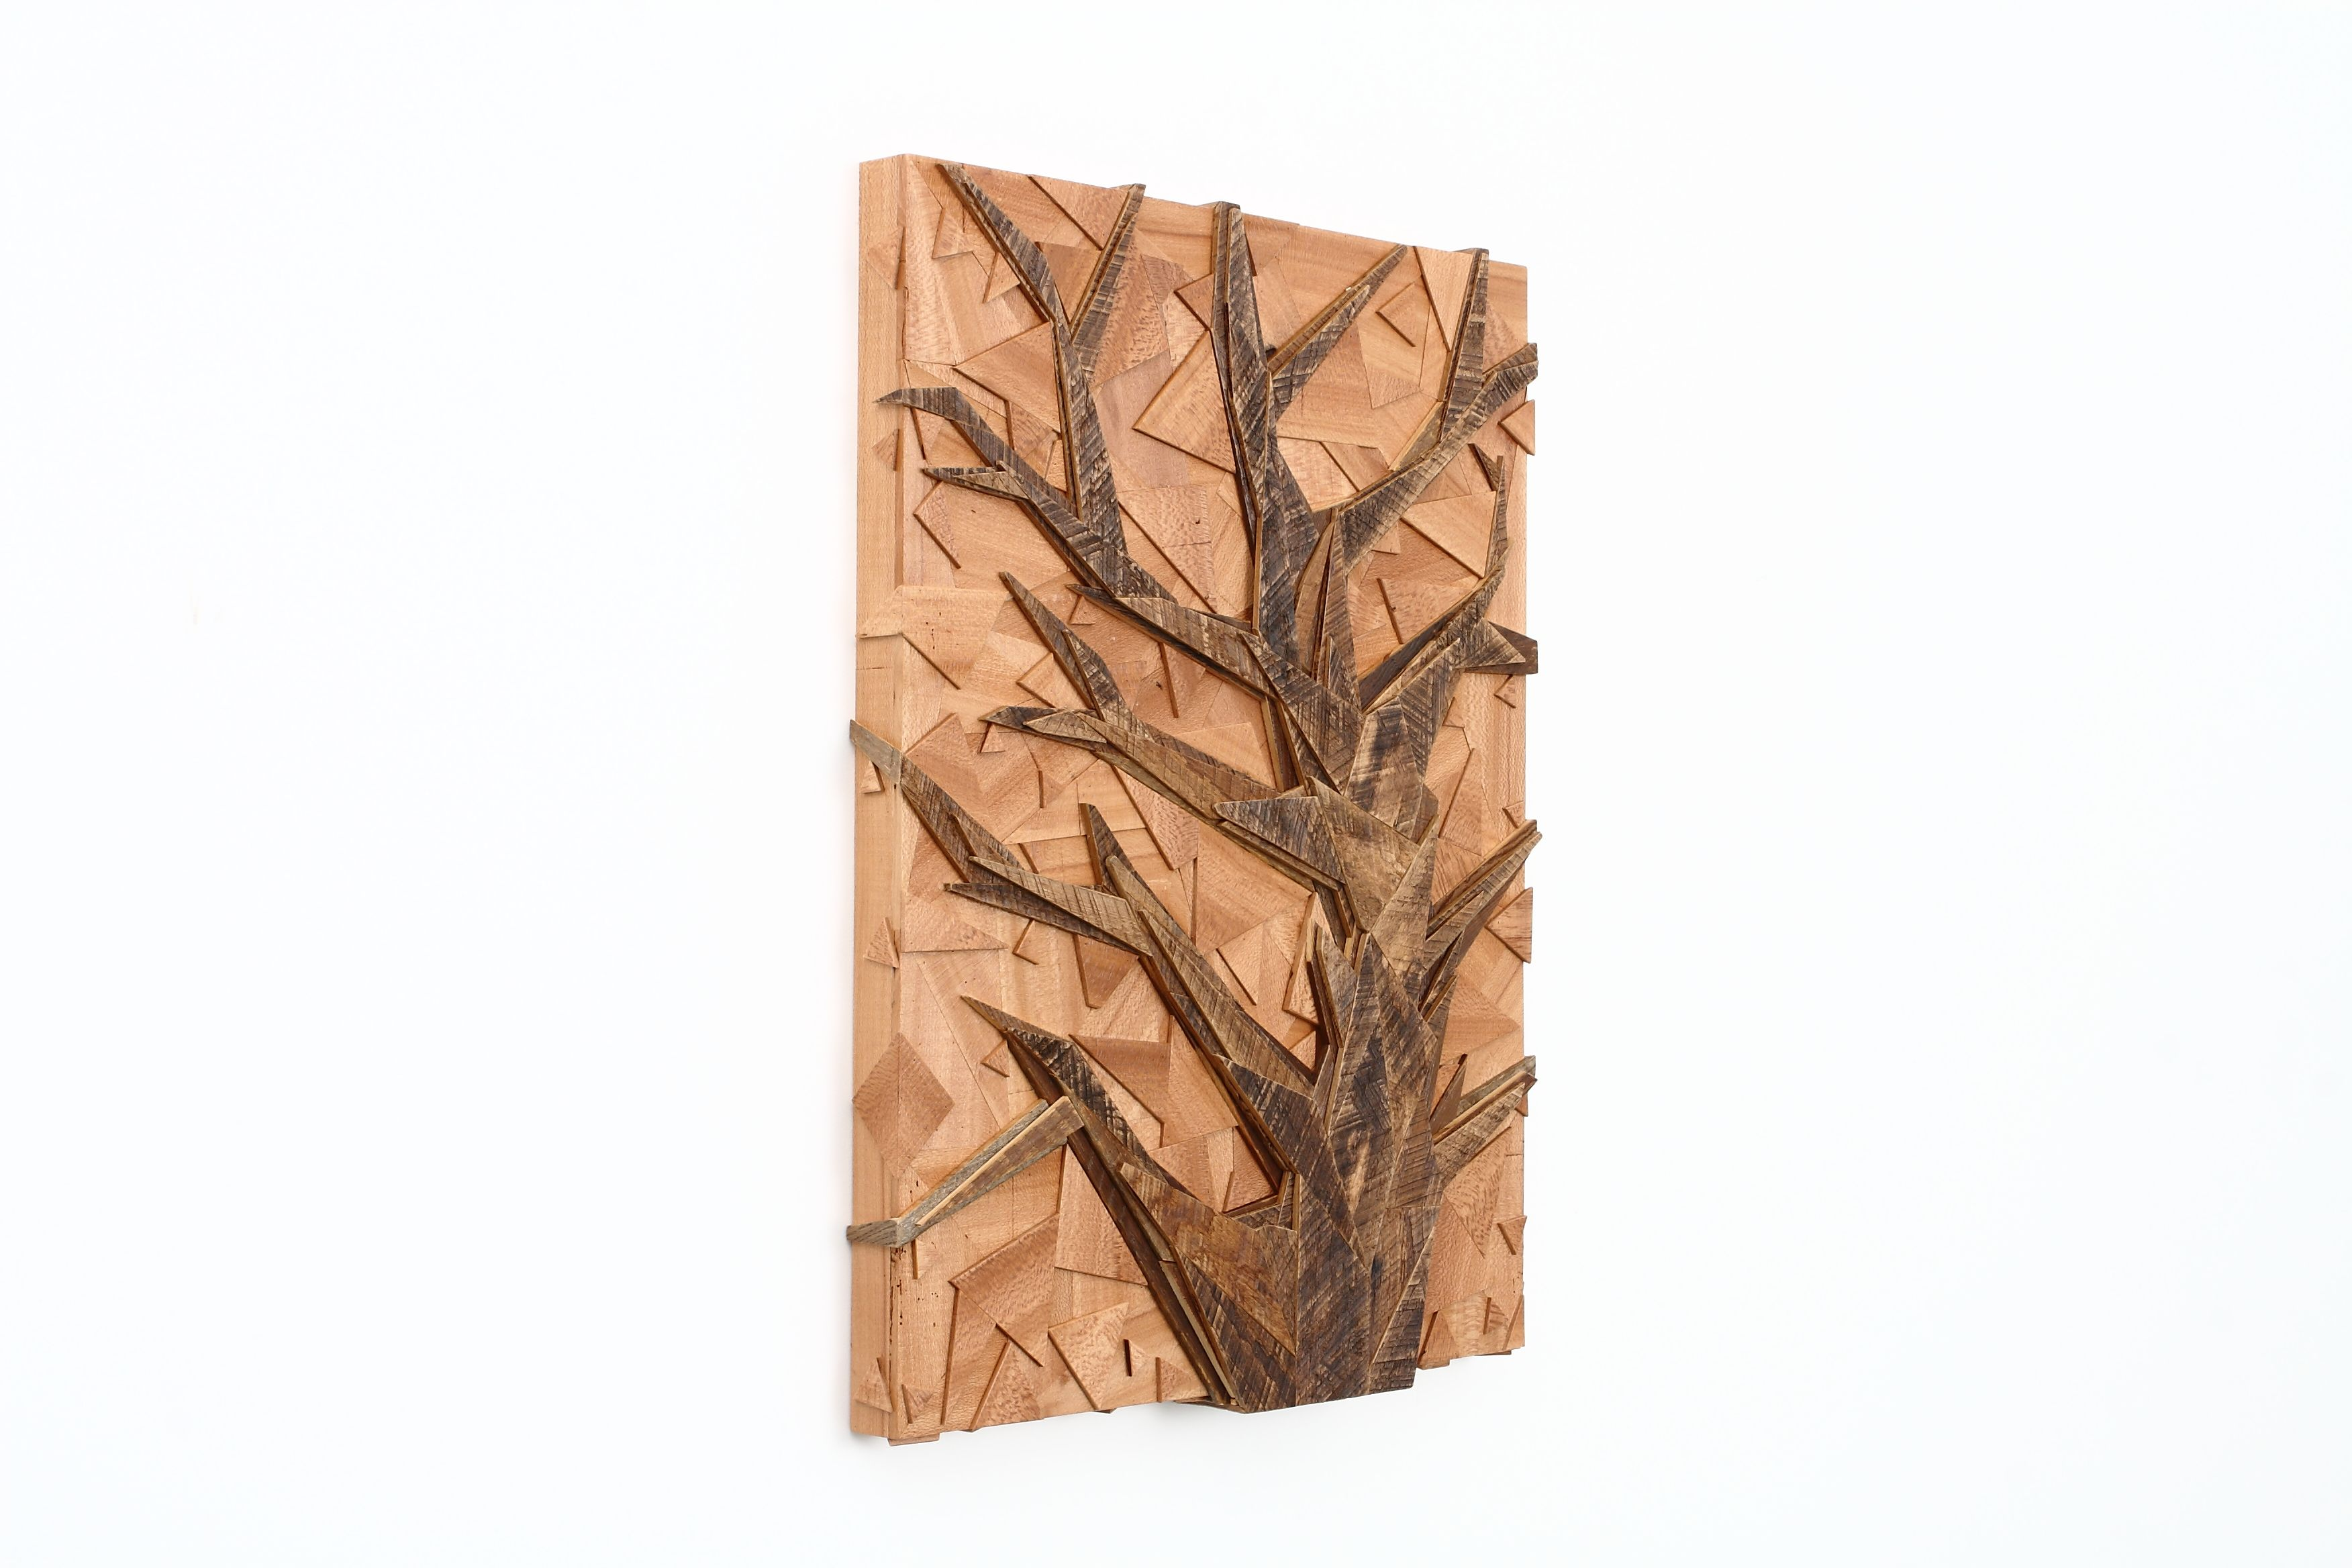 397a9184f83 Hand Made Tree Of Life Geometric Tree Artwork Made Of Old Reclaimed Wood